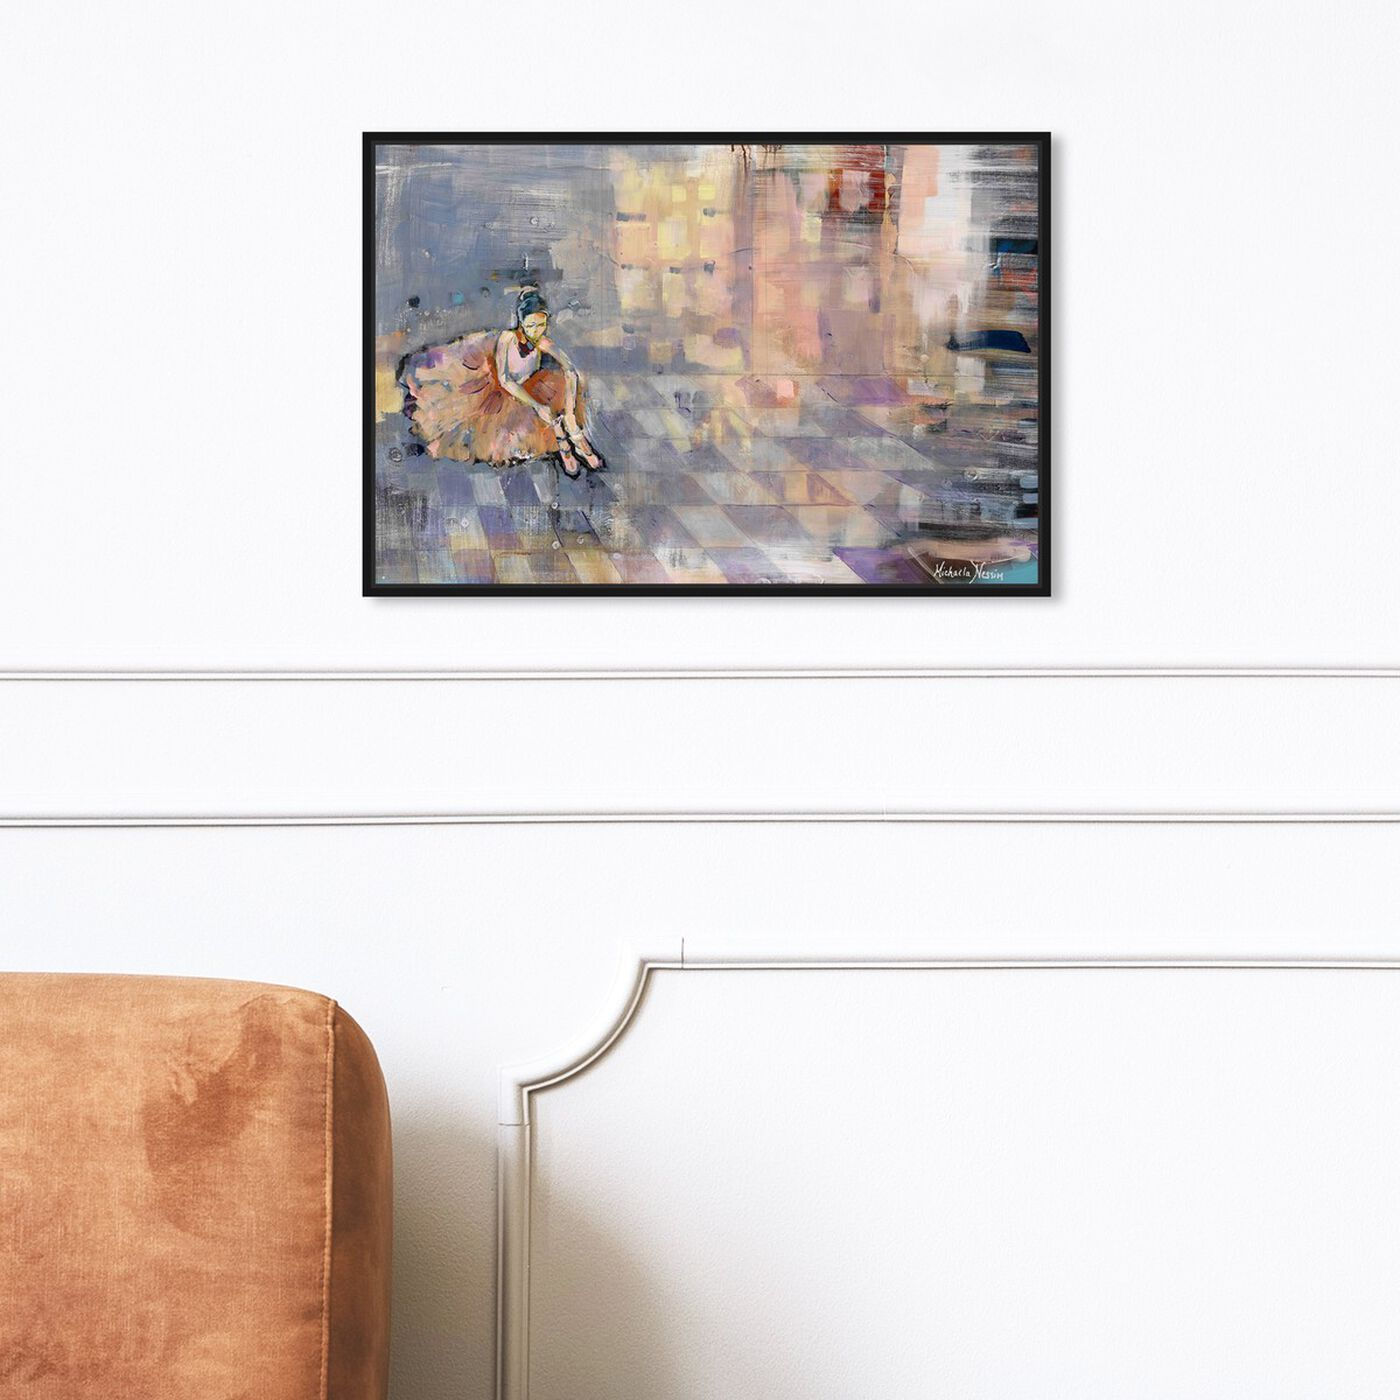 Hanging view of Michaela Nessim - Ballerina featuring sports and teams and ballet art.